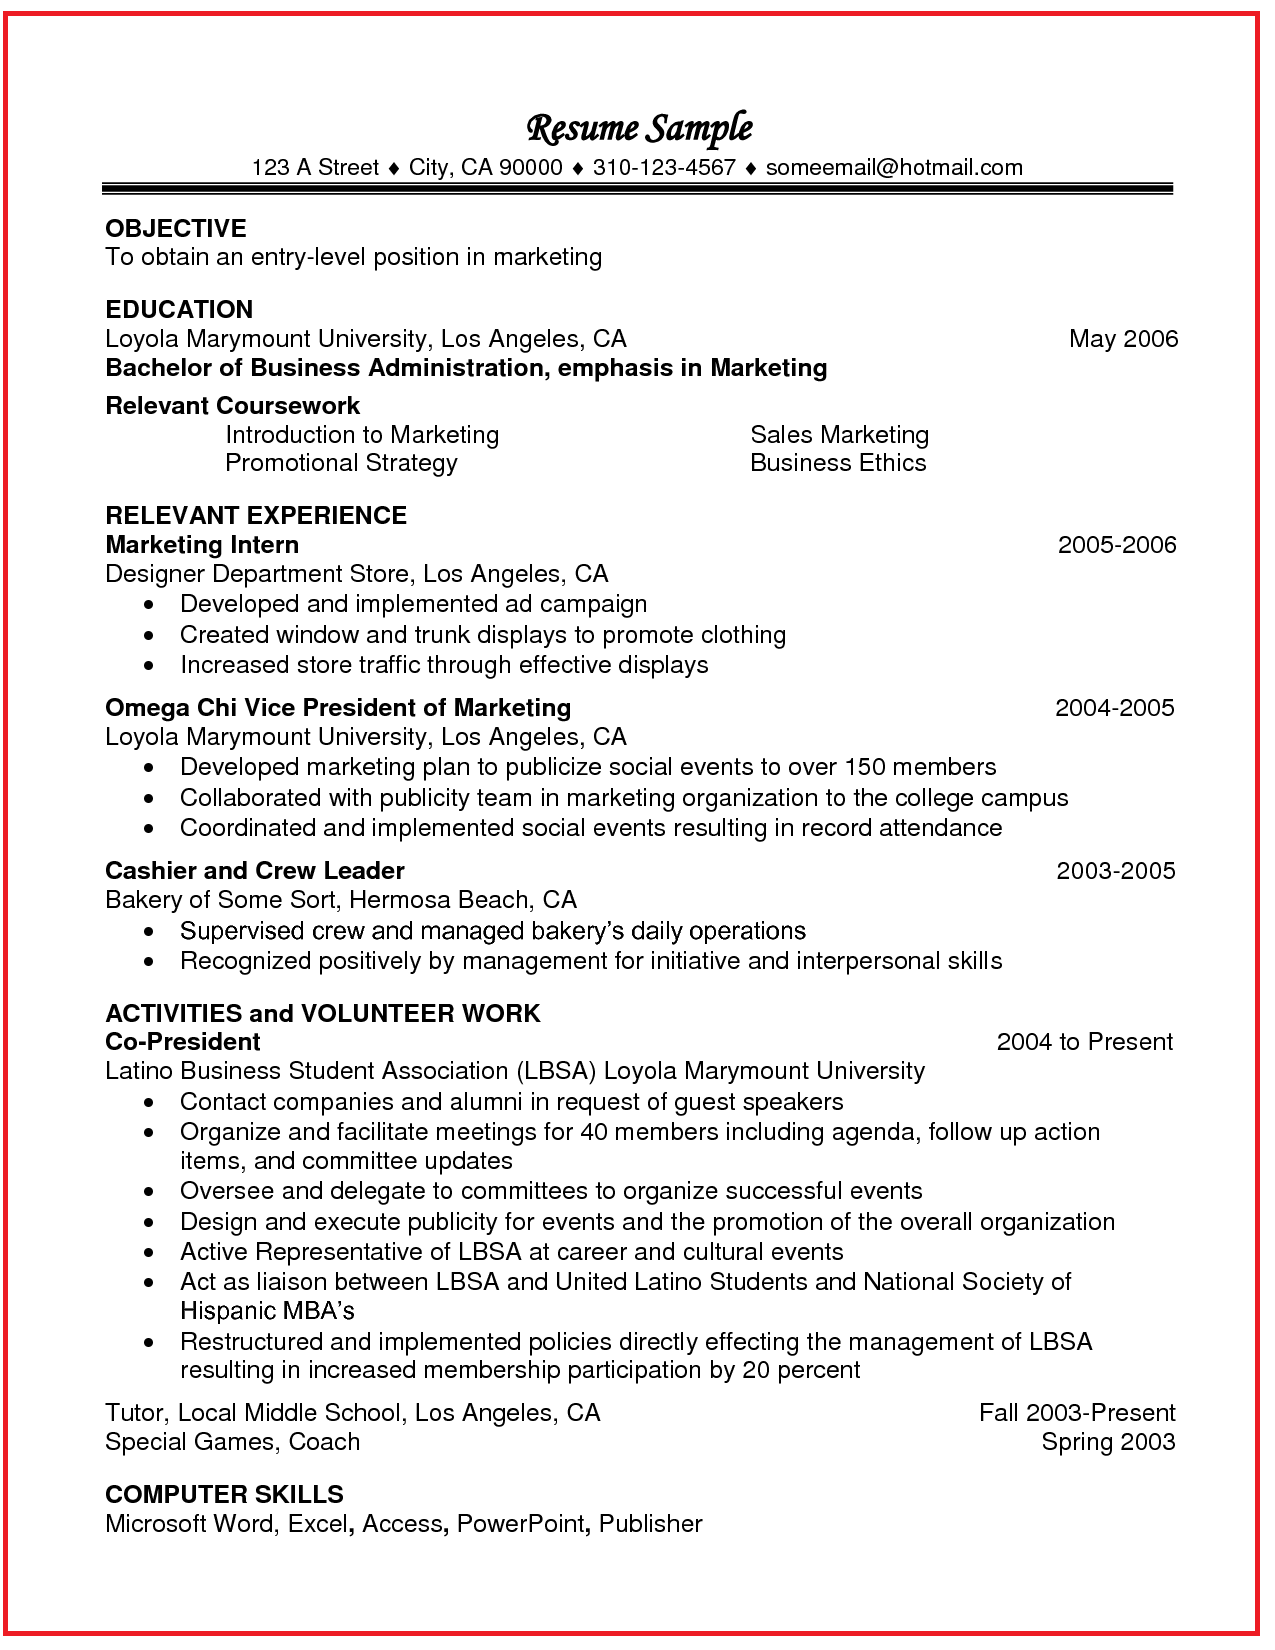 Social Work Resume Objective Relevant Coursework In Resume Example  Httpwwwjobresume